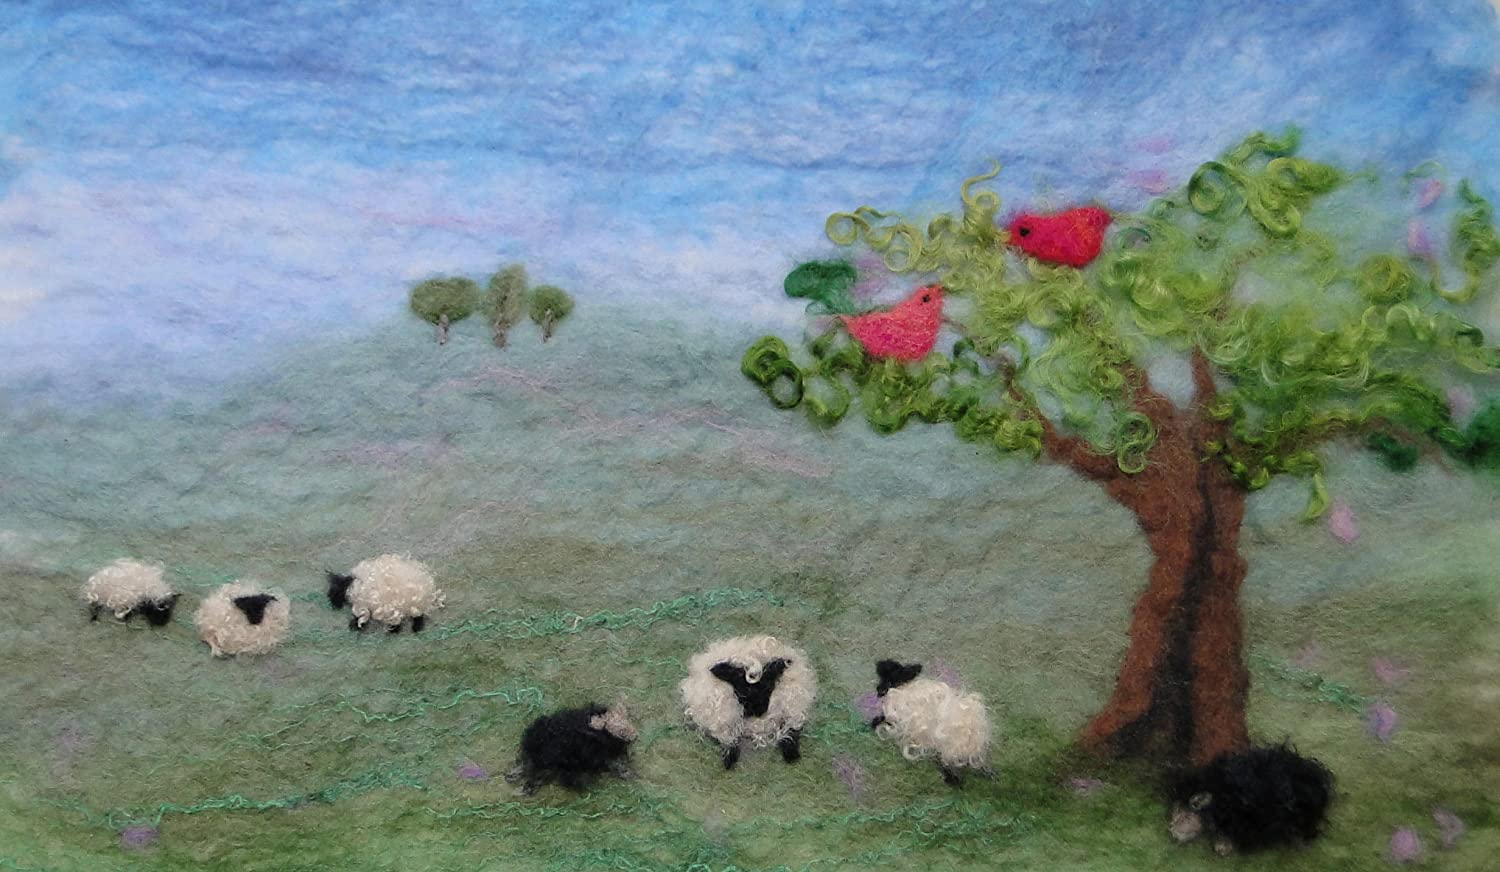 a Carefully Designed Craft kit to Make a Felted Picture with Tree and Birds Artfelt Sheep Landscape Picture Felt kit